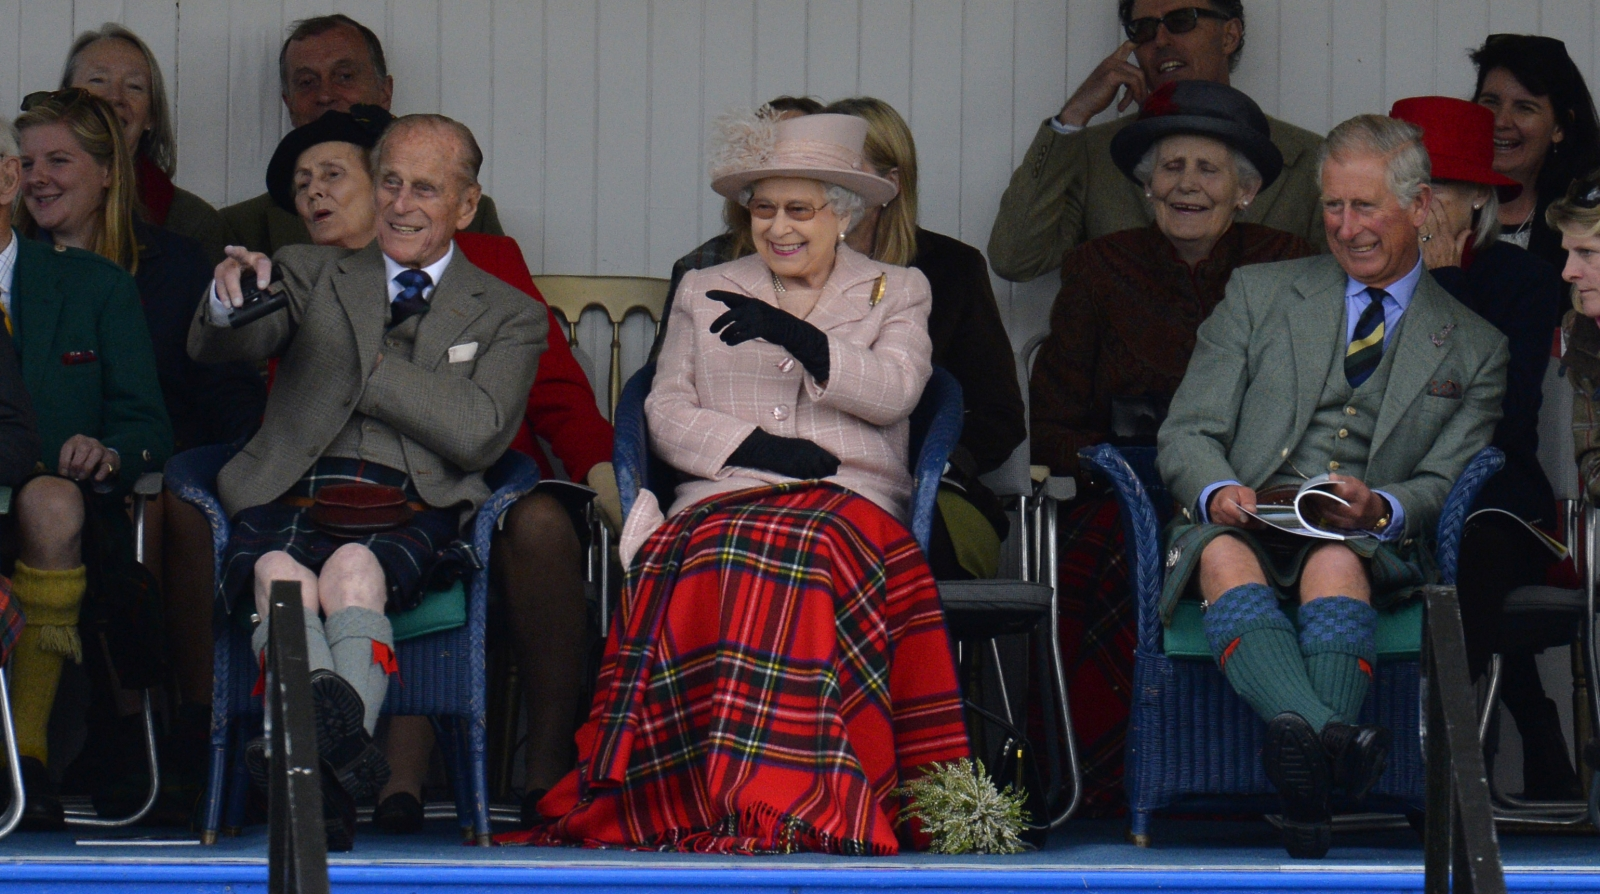 Prince Philip (L), Queen Elizabeth (C) and Prince Charles (R) at the Braemar Gathering in Scotland